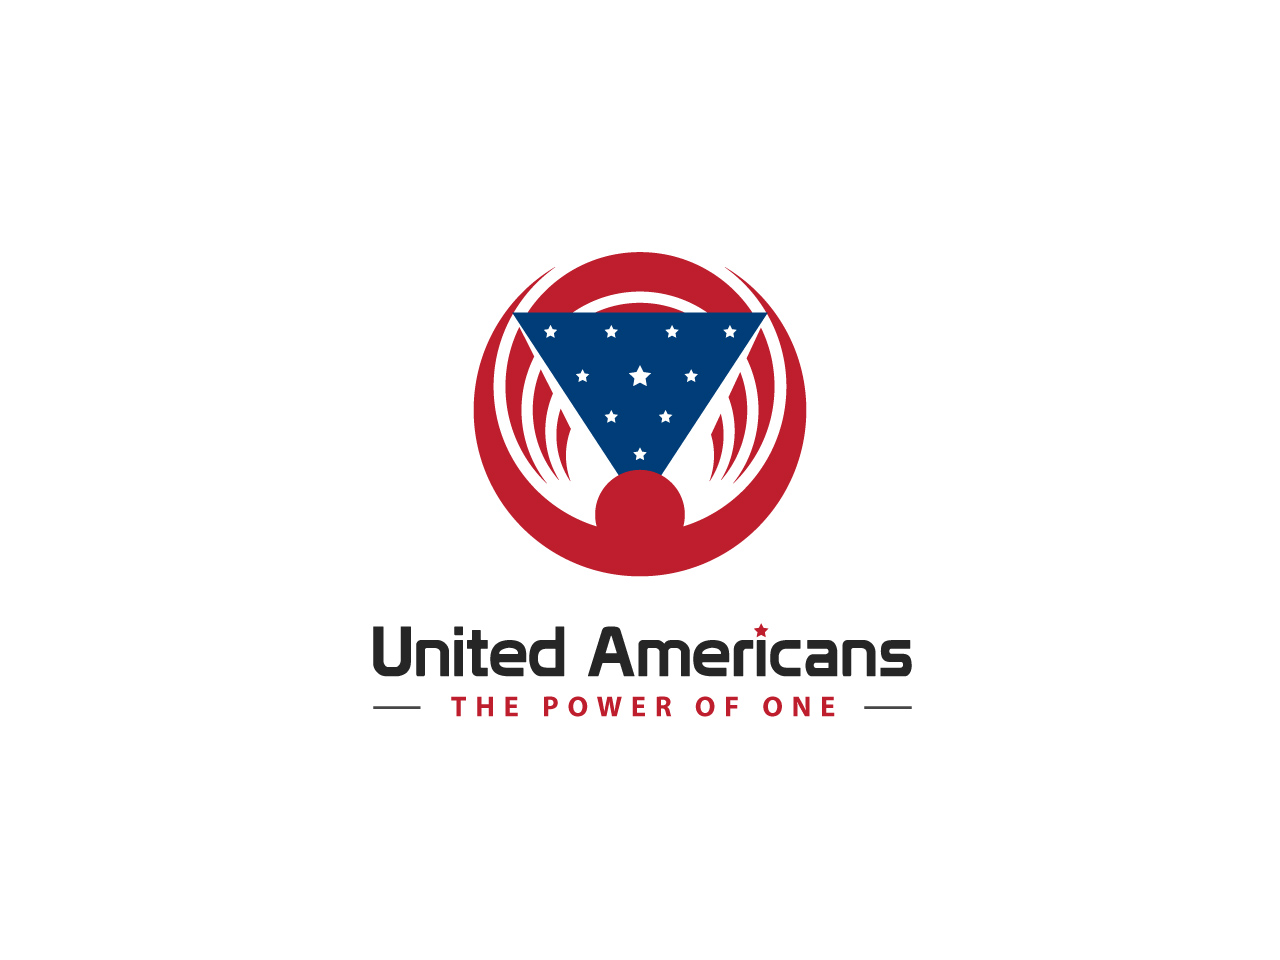 Logo Design by jpbituin - Entry No. 33 in the Logo Design Contest Creative Logo Design for United Americans.